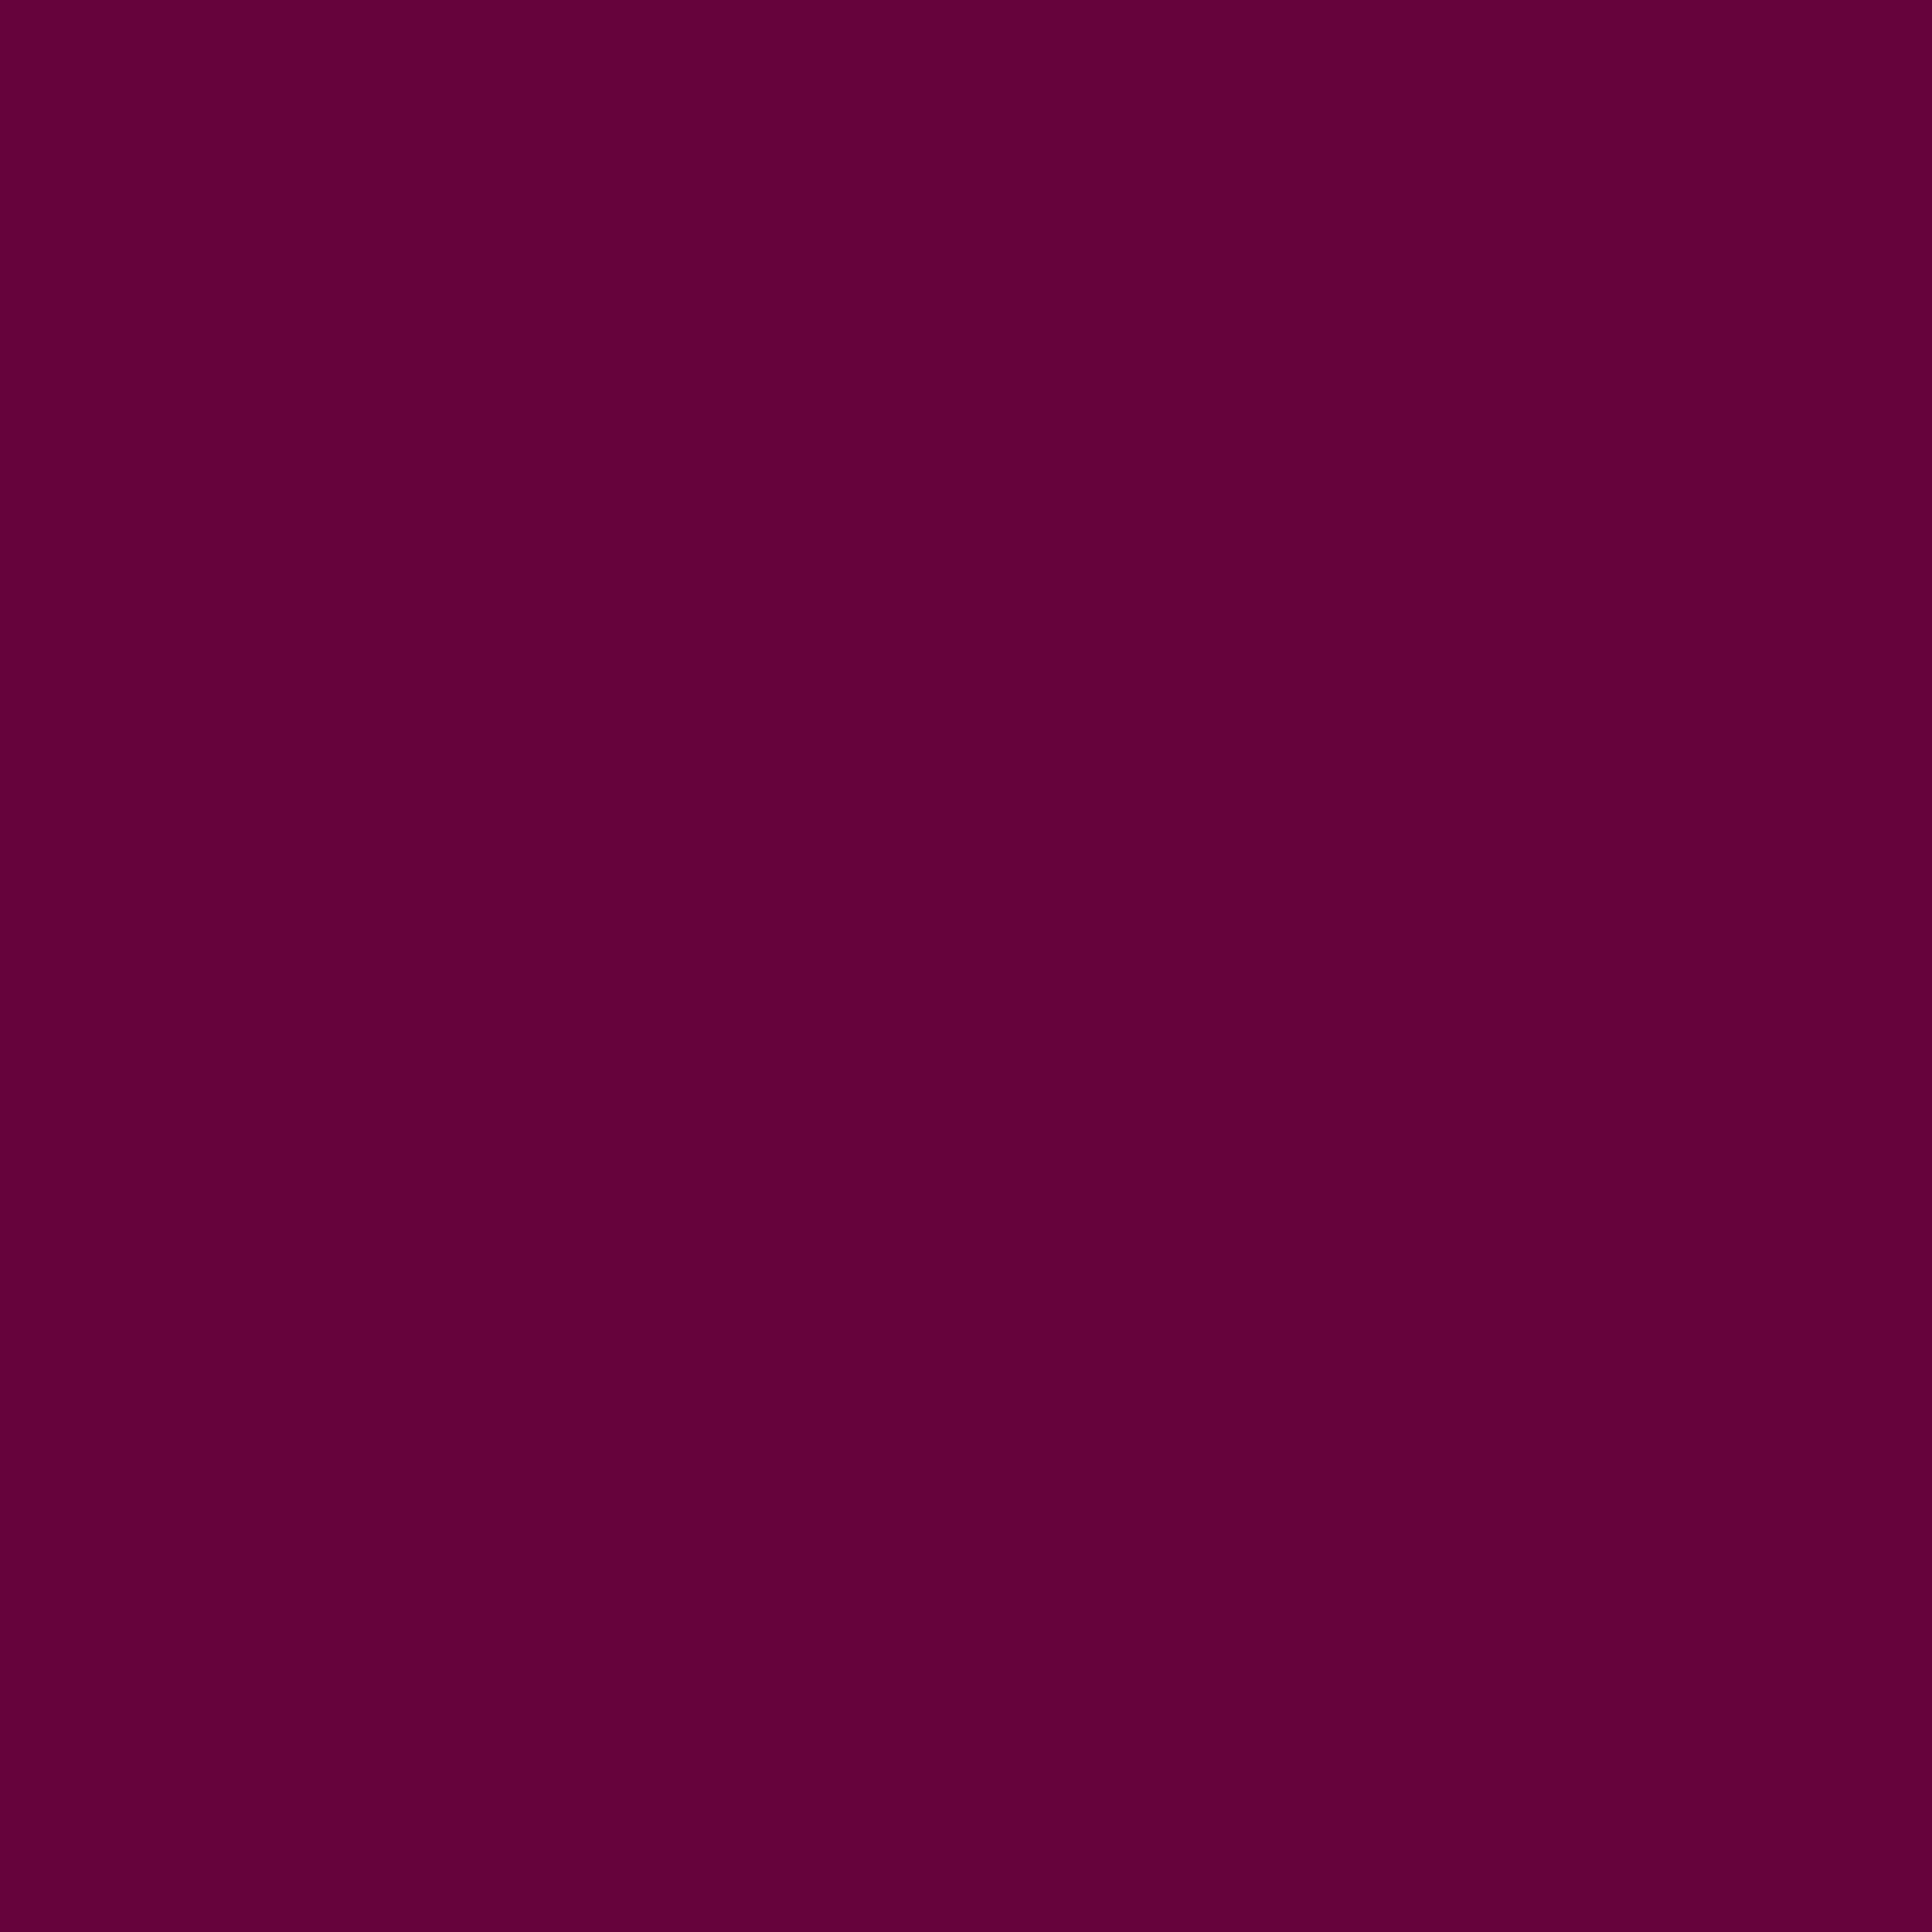 2048x2048 Tyrian Purple Solid Color Background